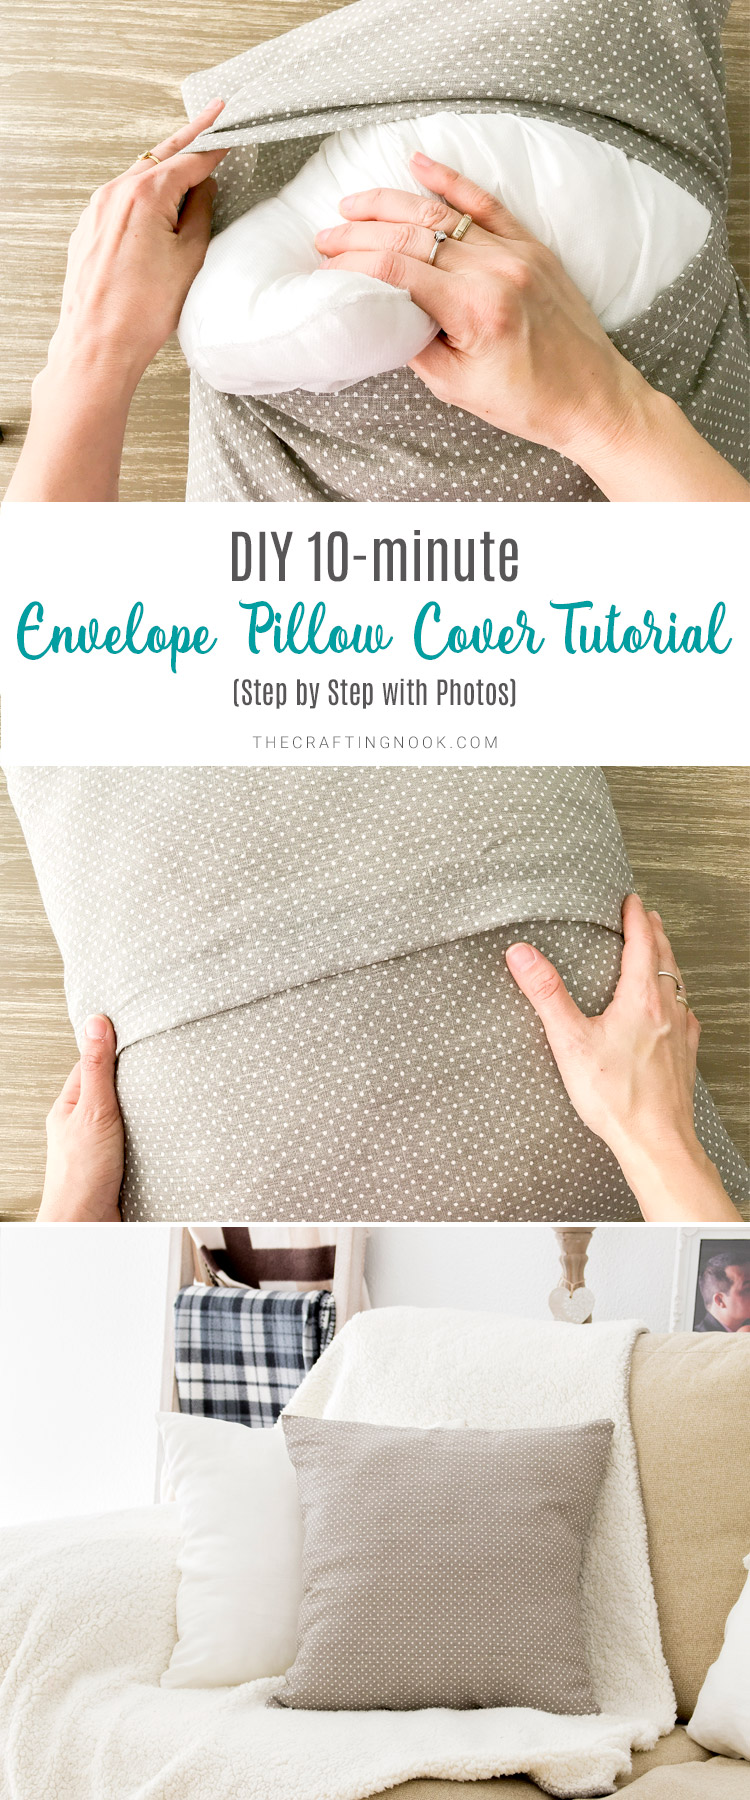 DIY 10-minute Envelope Pillow Cover Tutorial